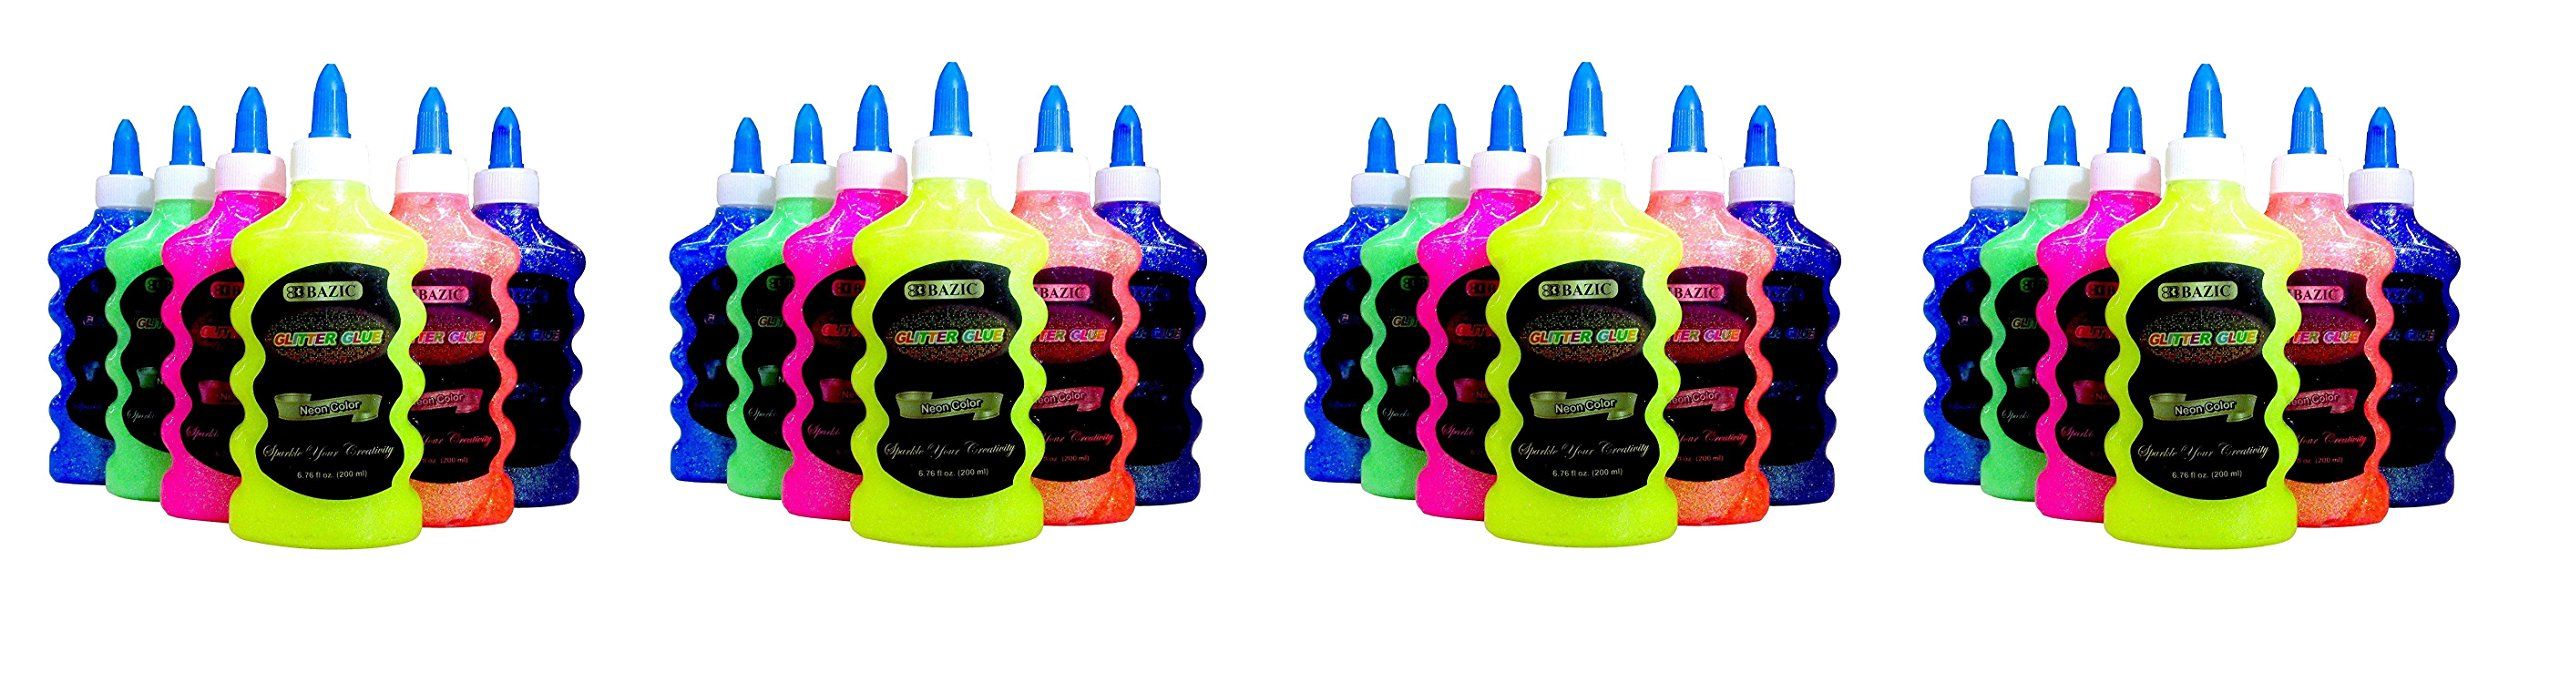 NEON Colors - Pink, Green, Blue, Yellow, Purple, and Orange (4 X Pack of 6)